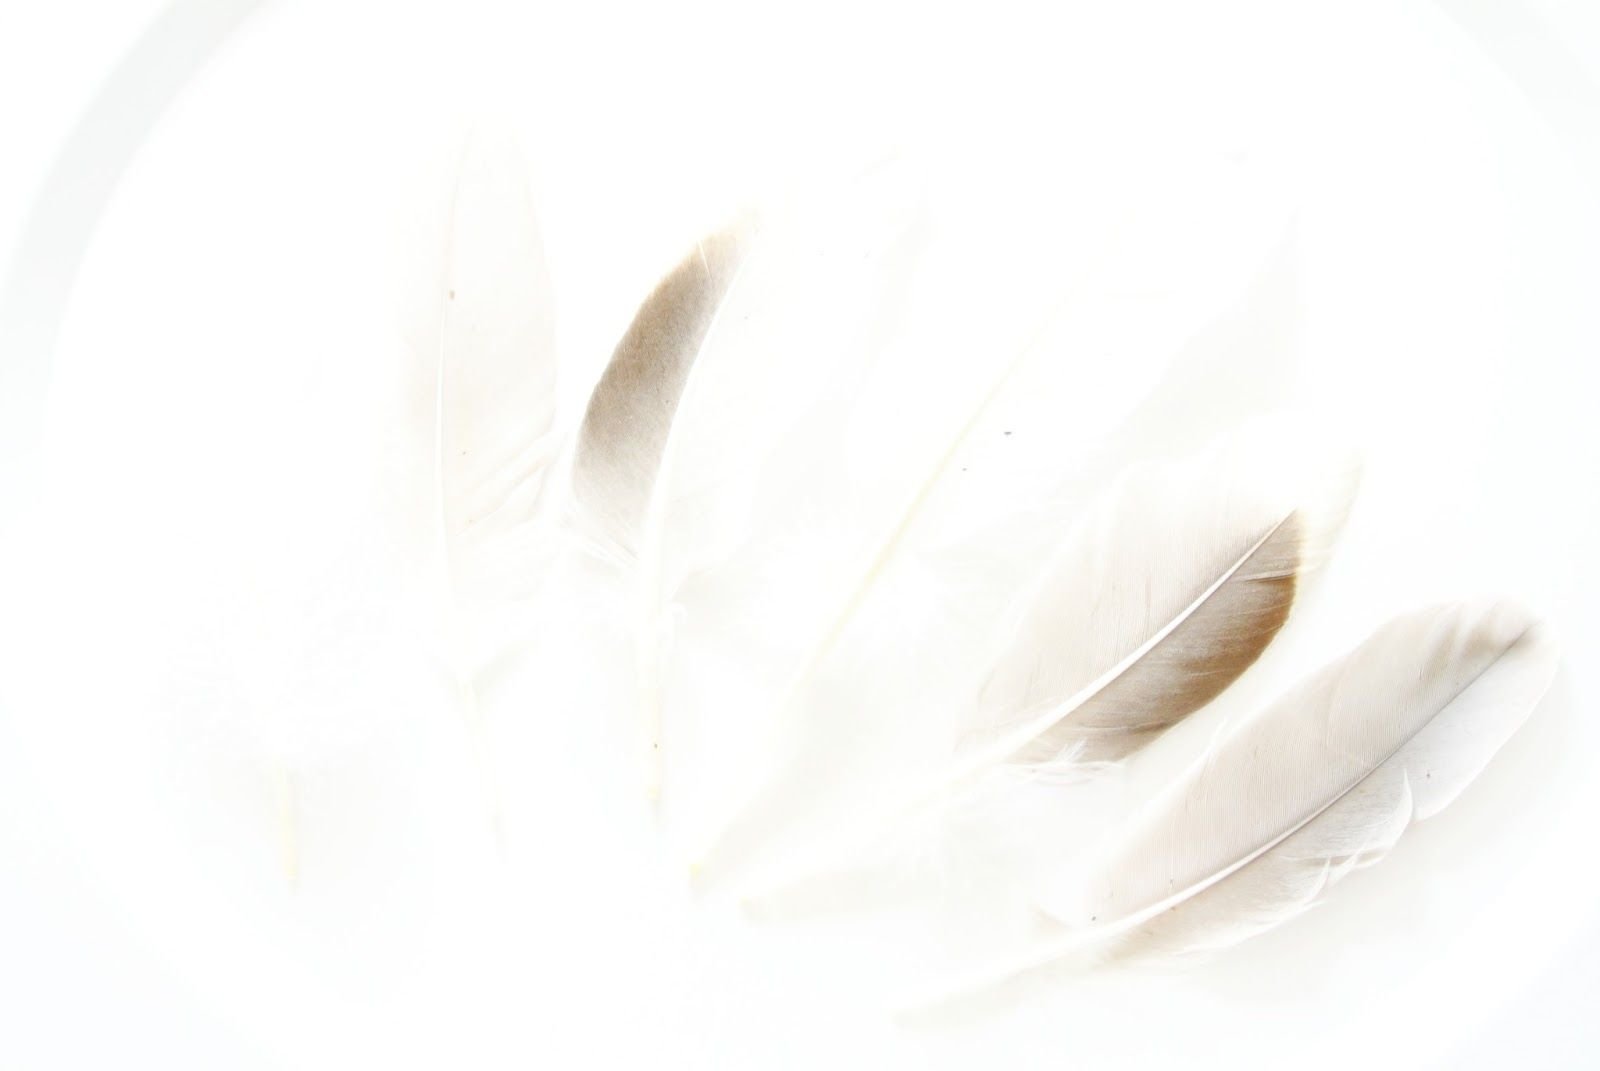 More feathers on charlysstyleoflife.blogspot.nl